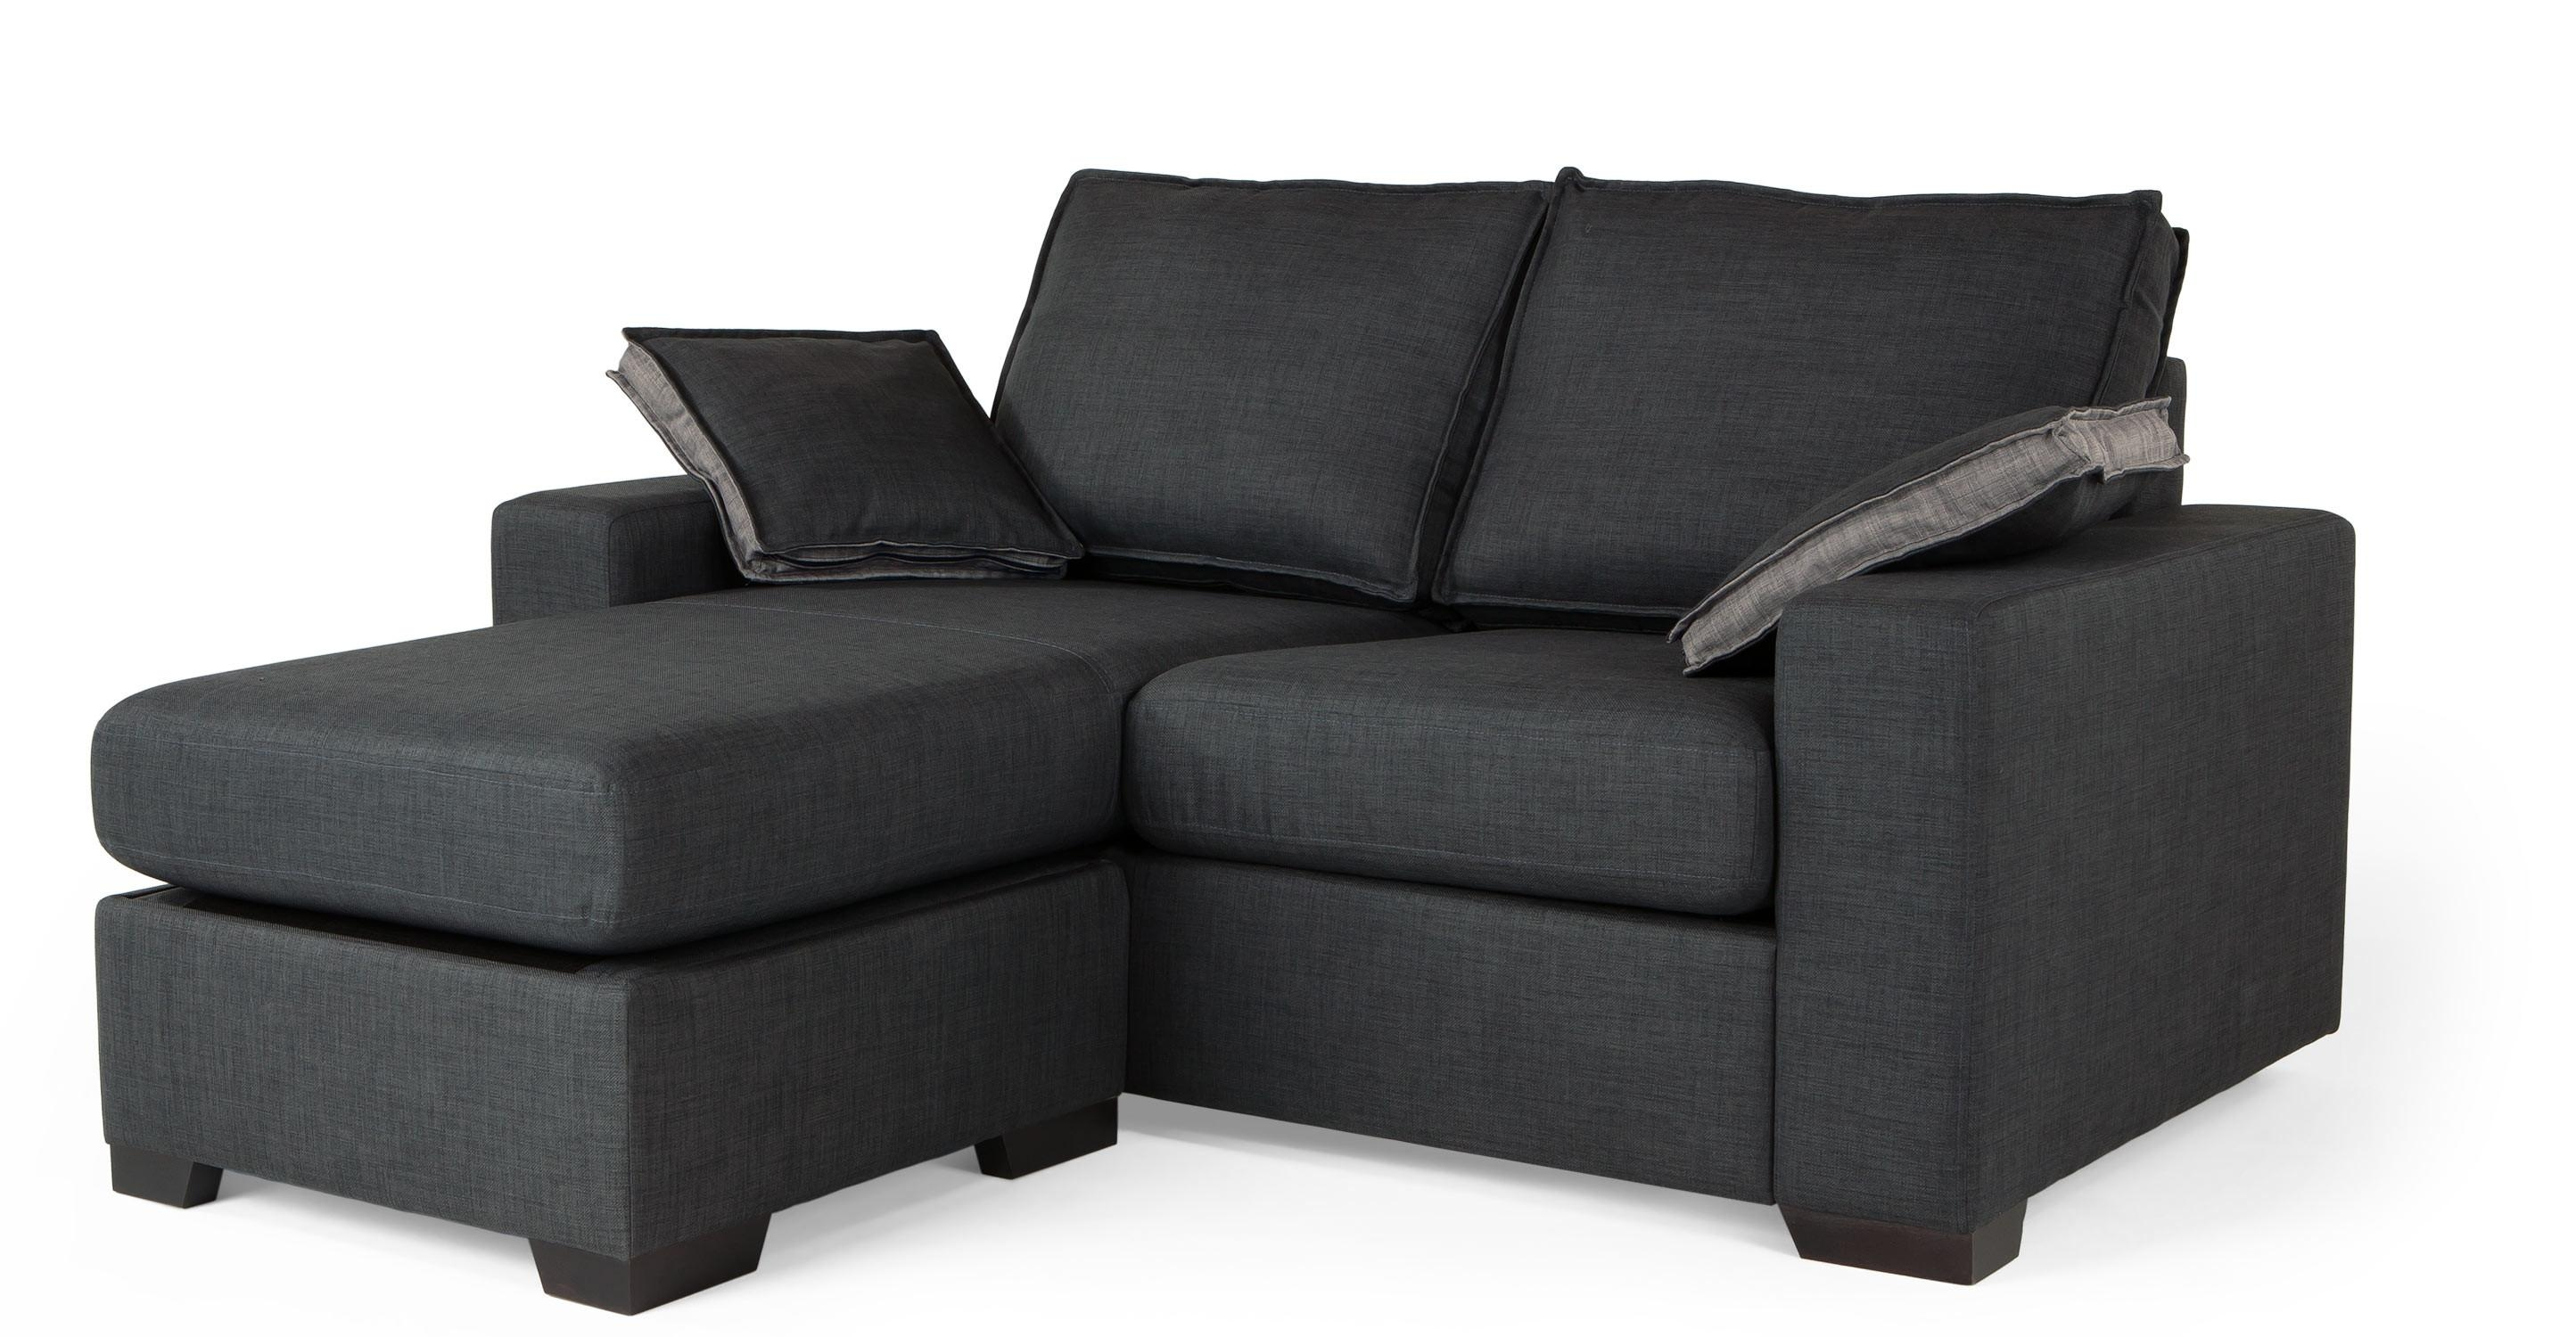 Sofas Center : Stirring Smallnal Sofa Images Ideas Charcoal Wyatt With 2 Seat Sectional Sofas (View 5 of 15)